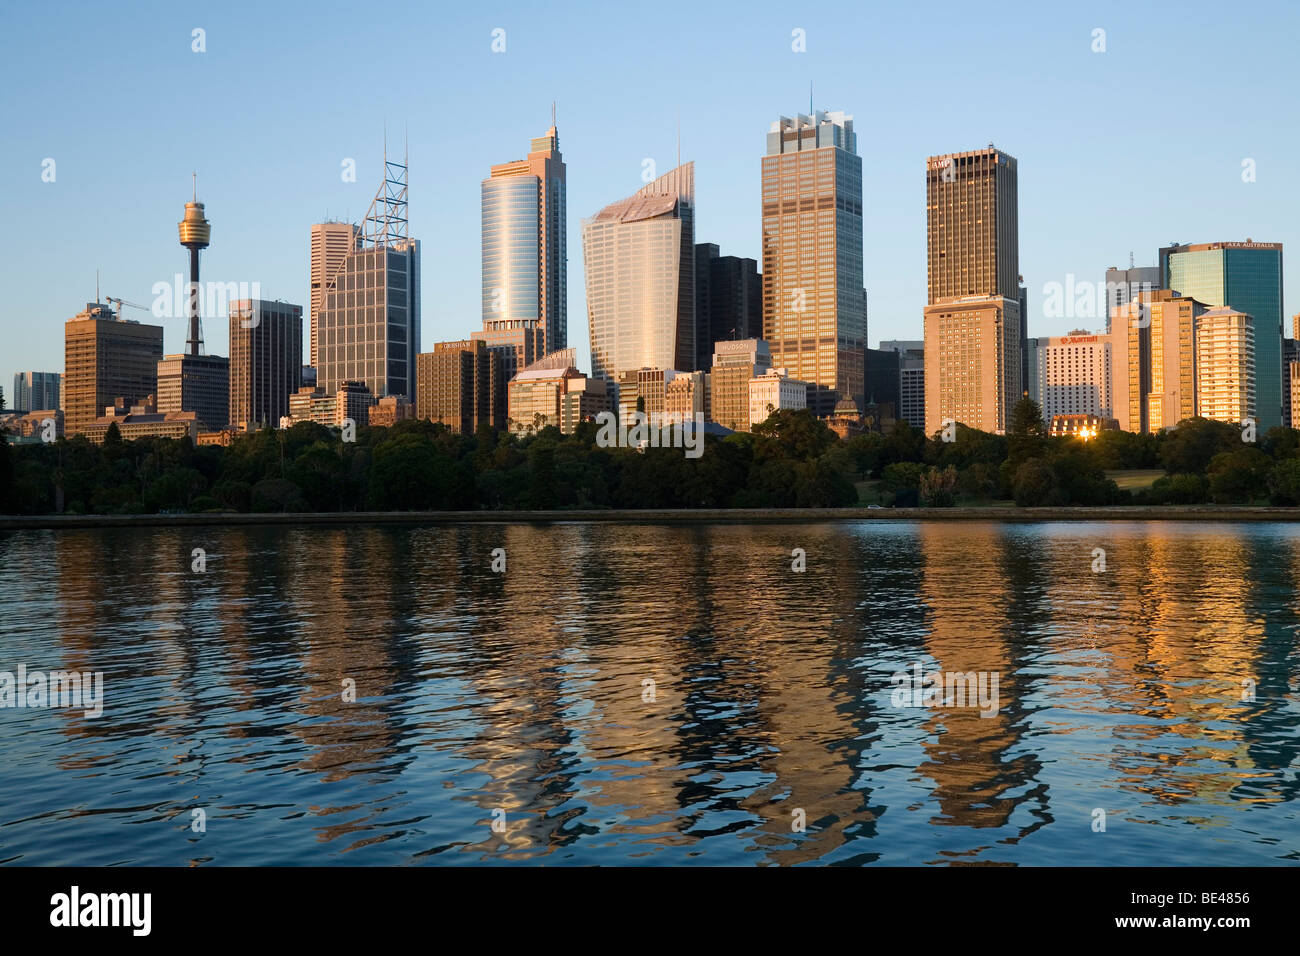 View of the Sydney city skyline at dawn. Sydney, New South Wales, AUSTRALIA - Stock Image